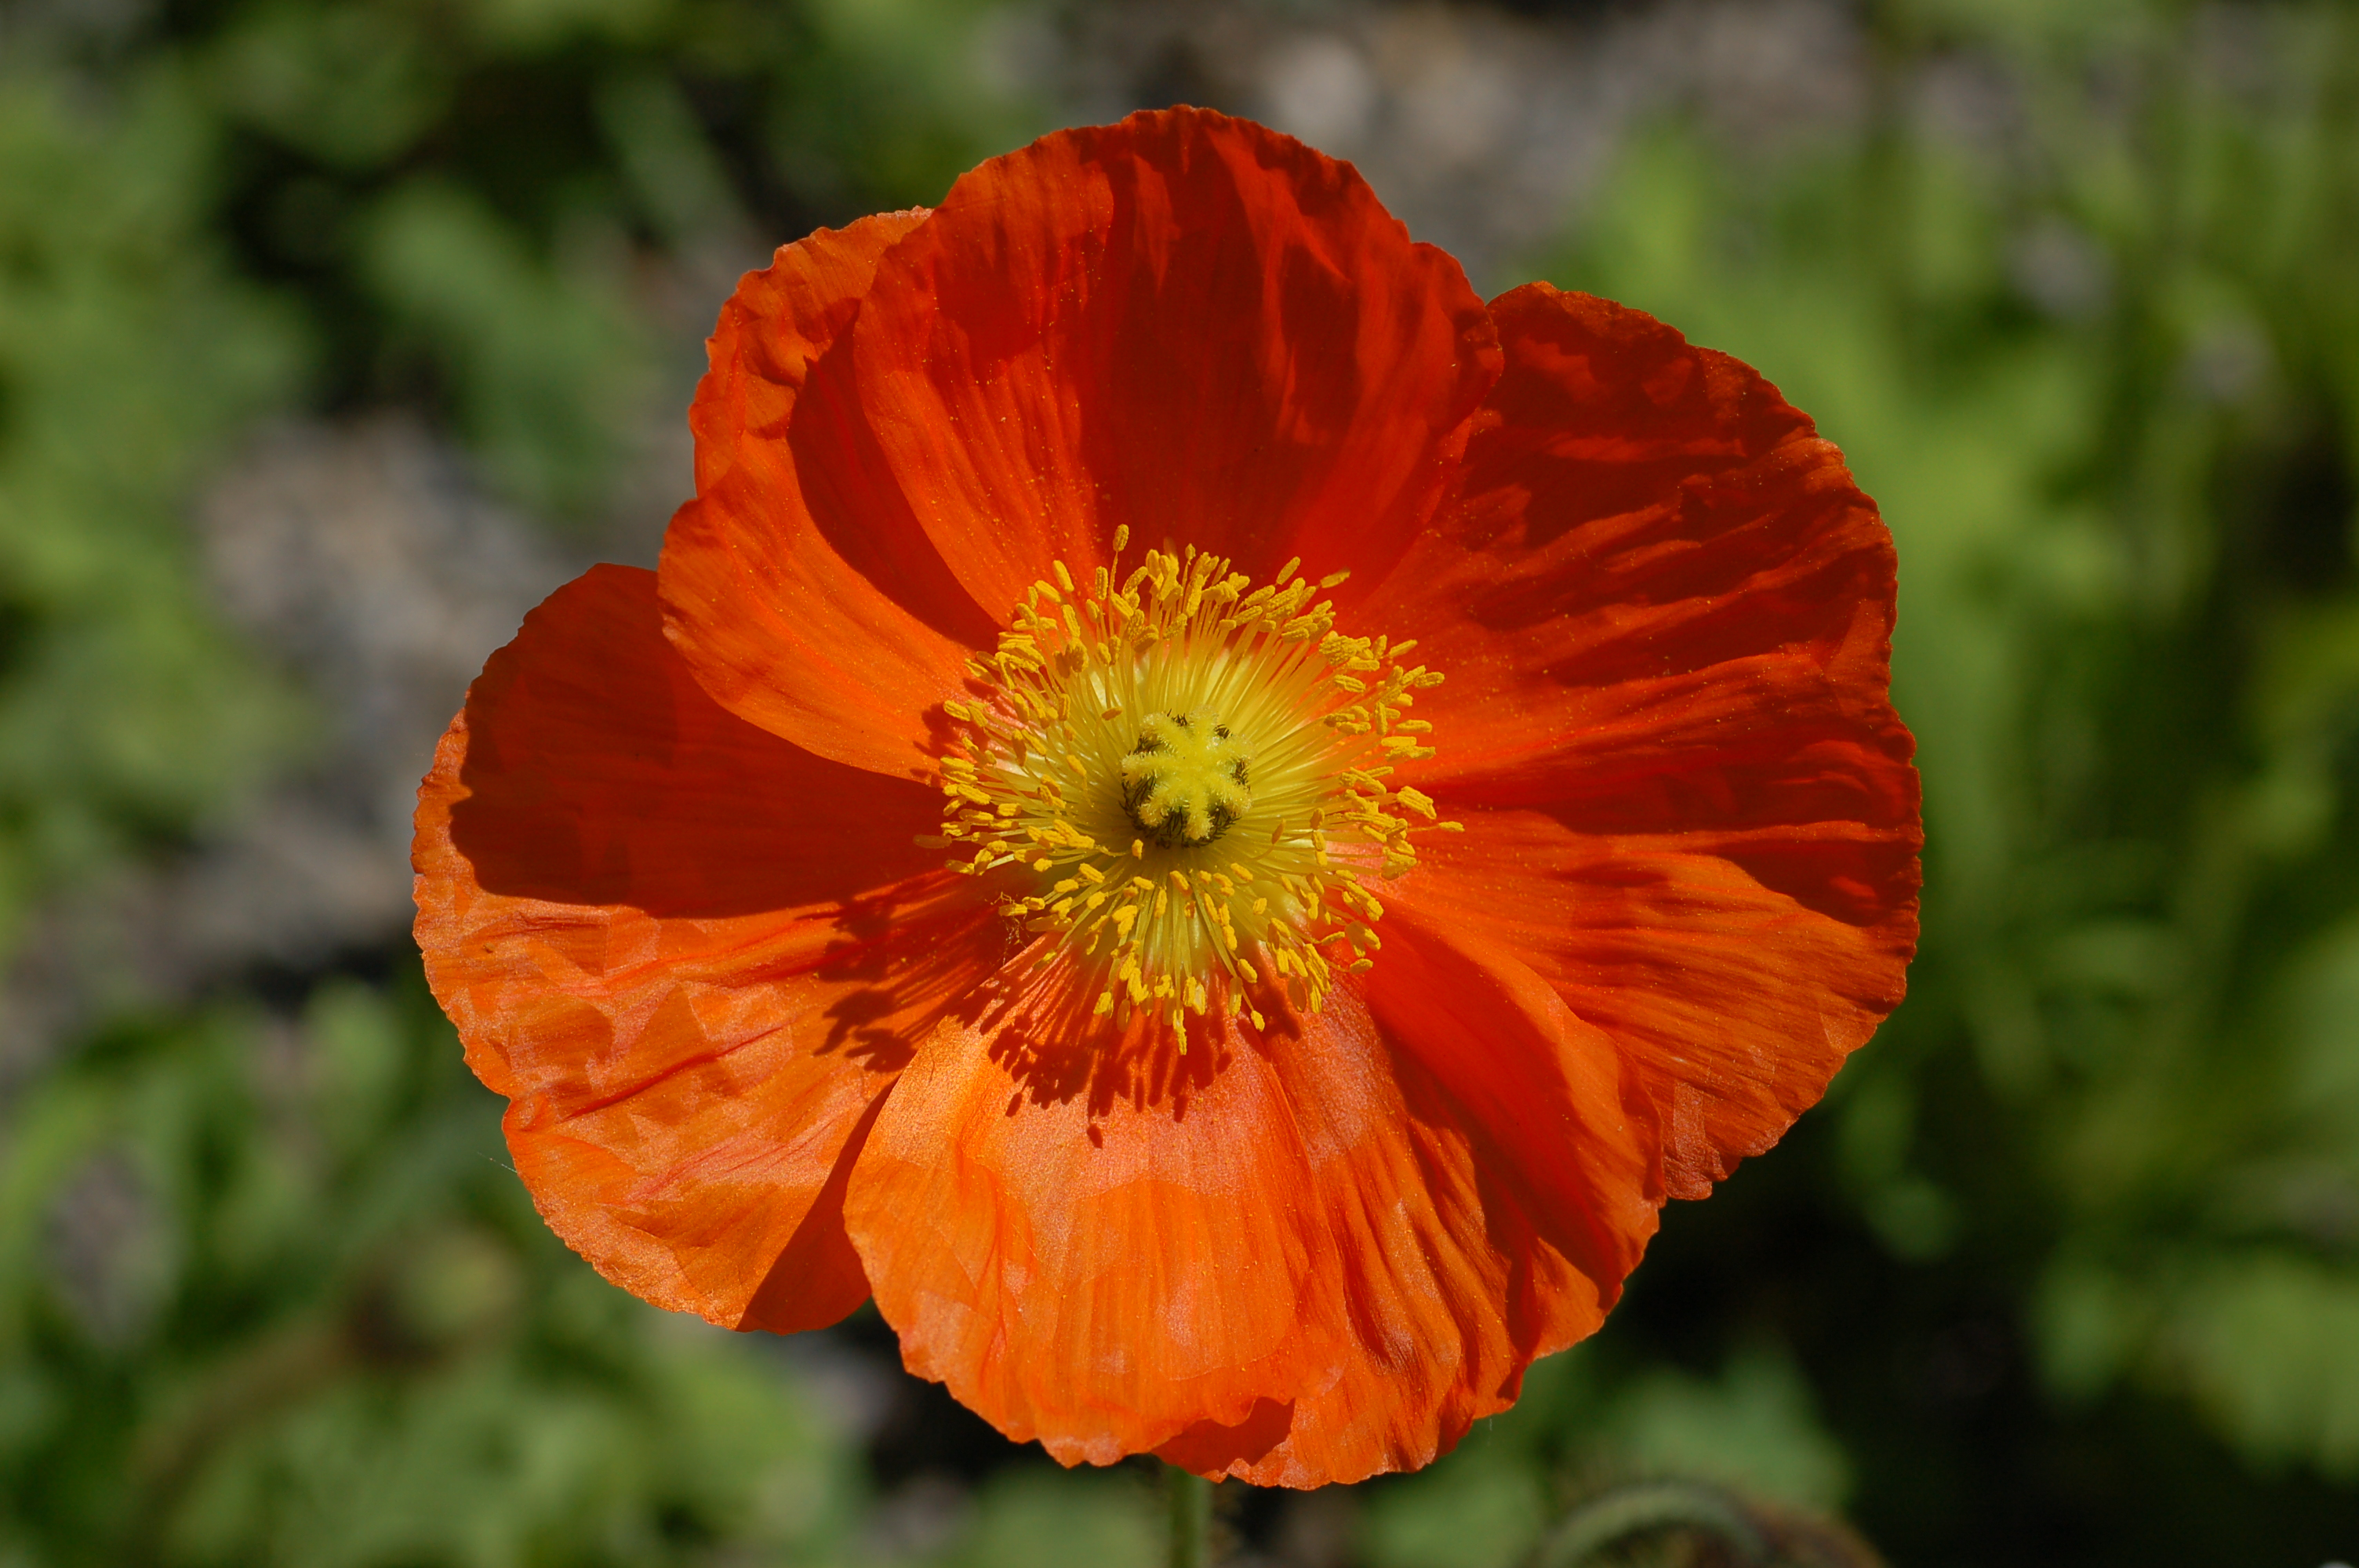 Fileiceland poppy papaver nudicaule champagne bubbles orange fileiceland poppy papaver nudicaule champagne bubbles orange flowerg mightylinksfo